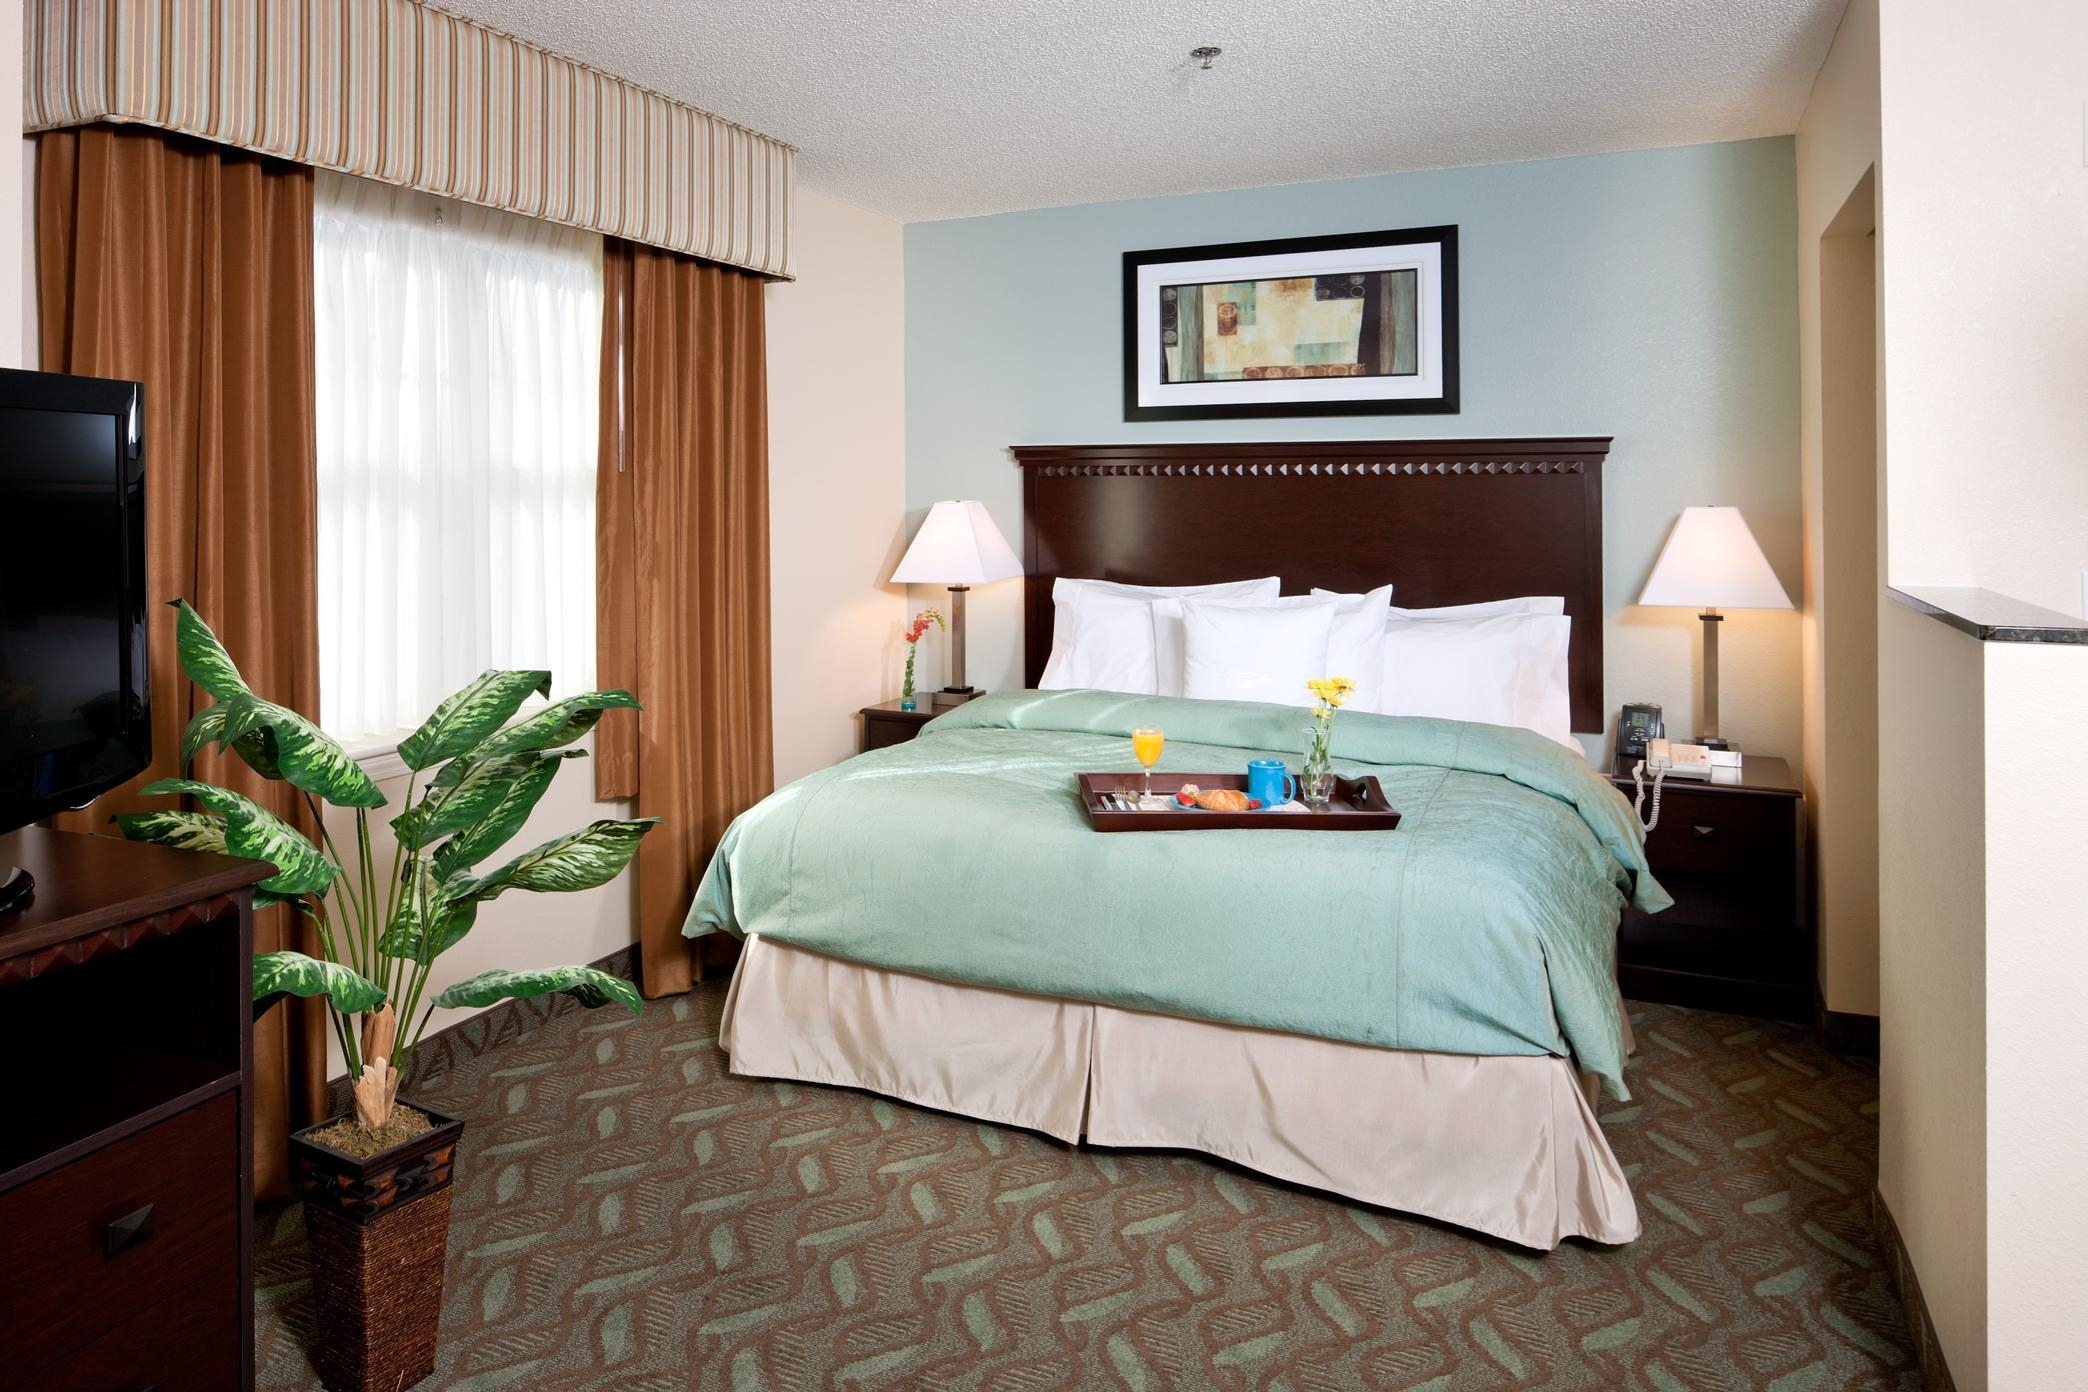 Homewood Suites by Hilton Boston / Andover image 9